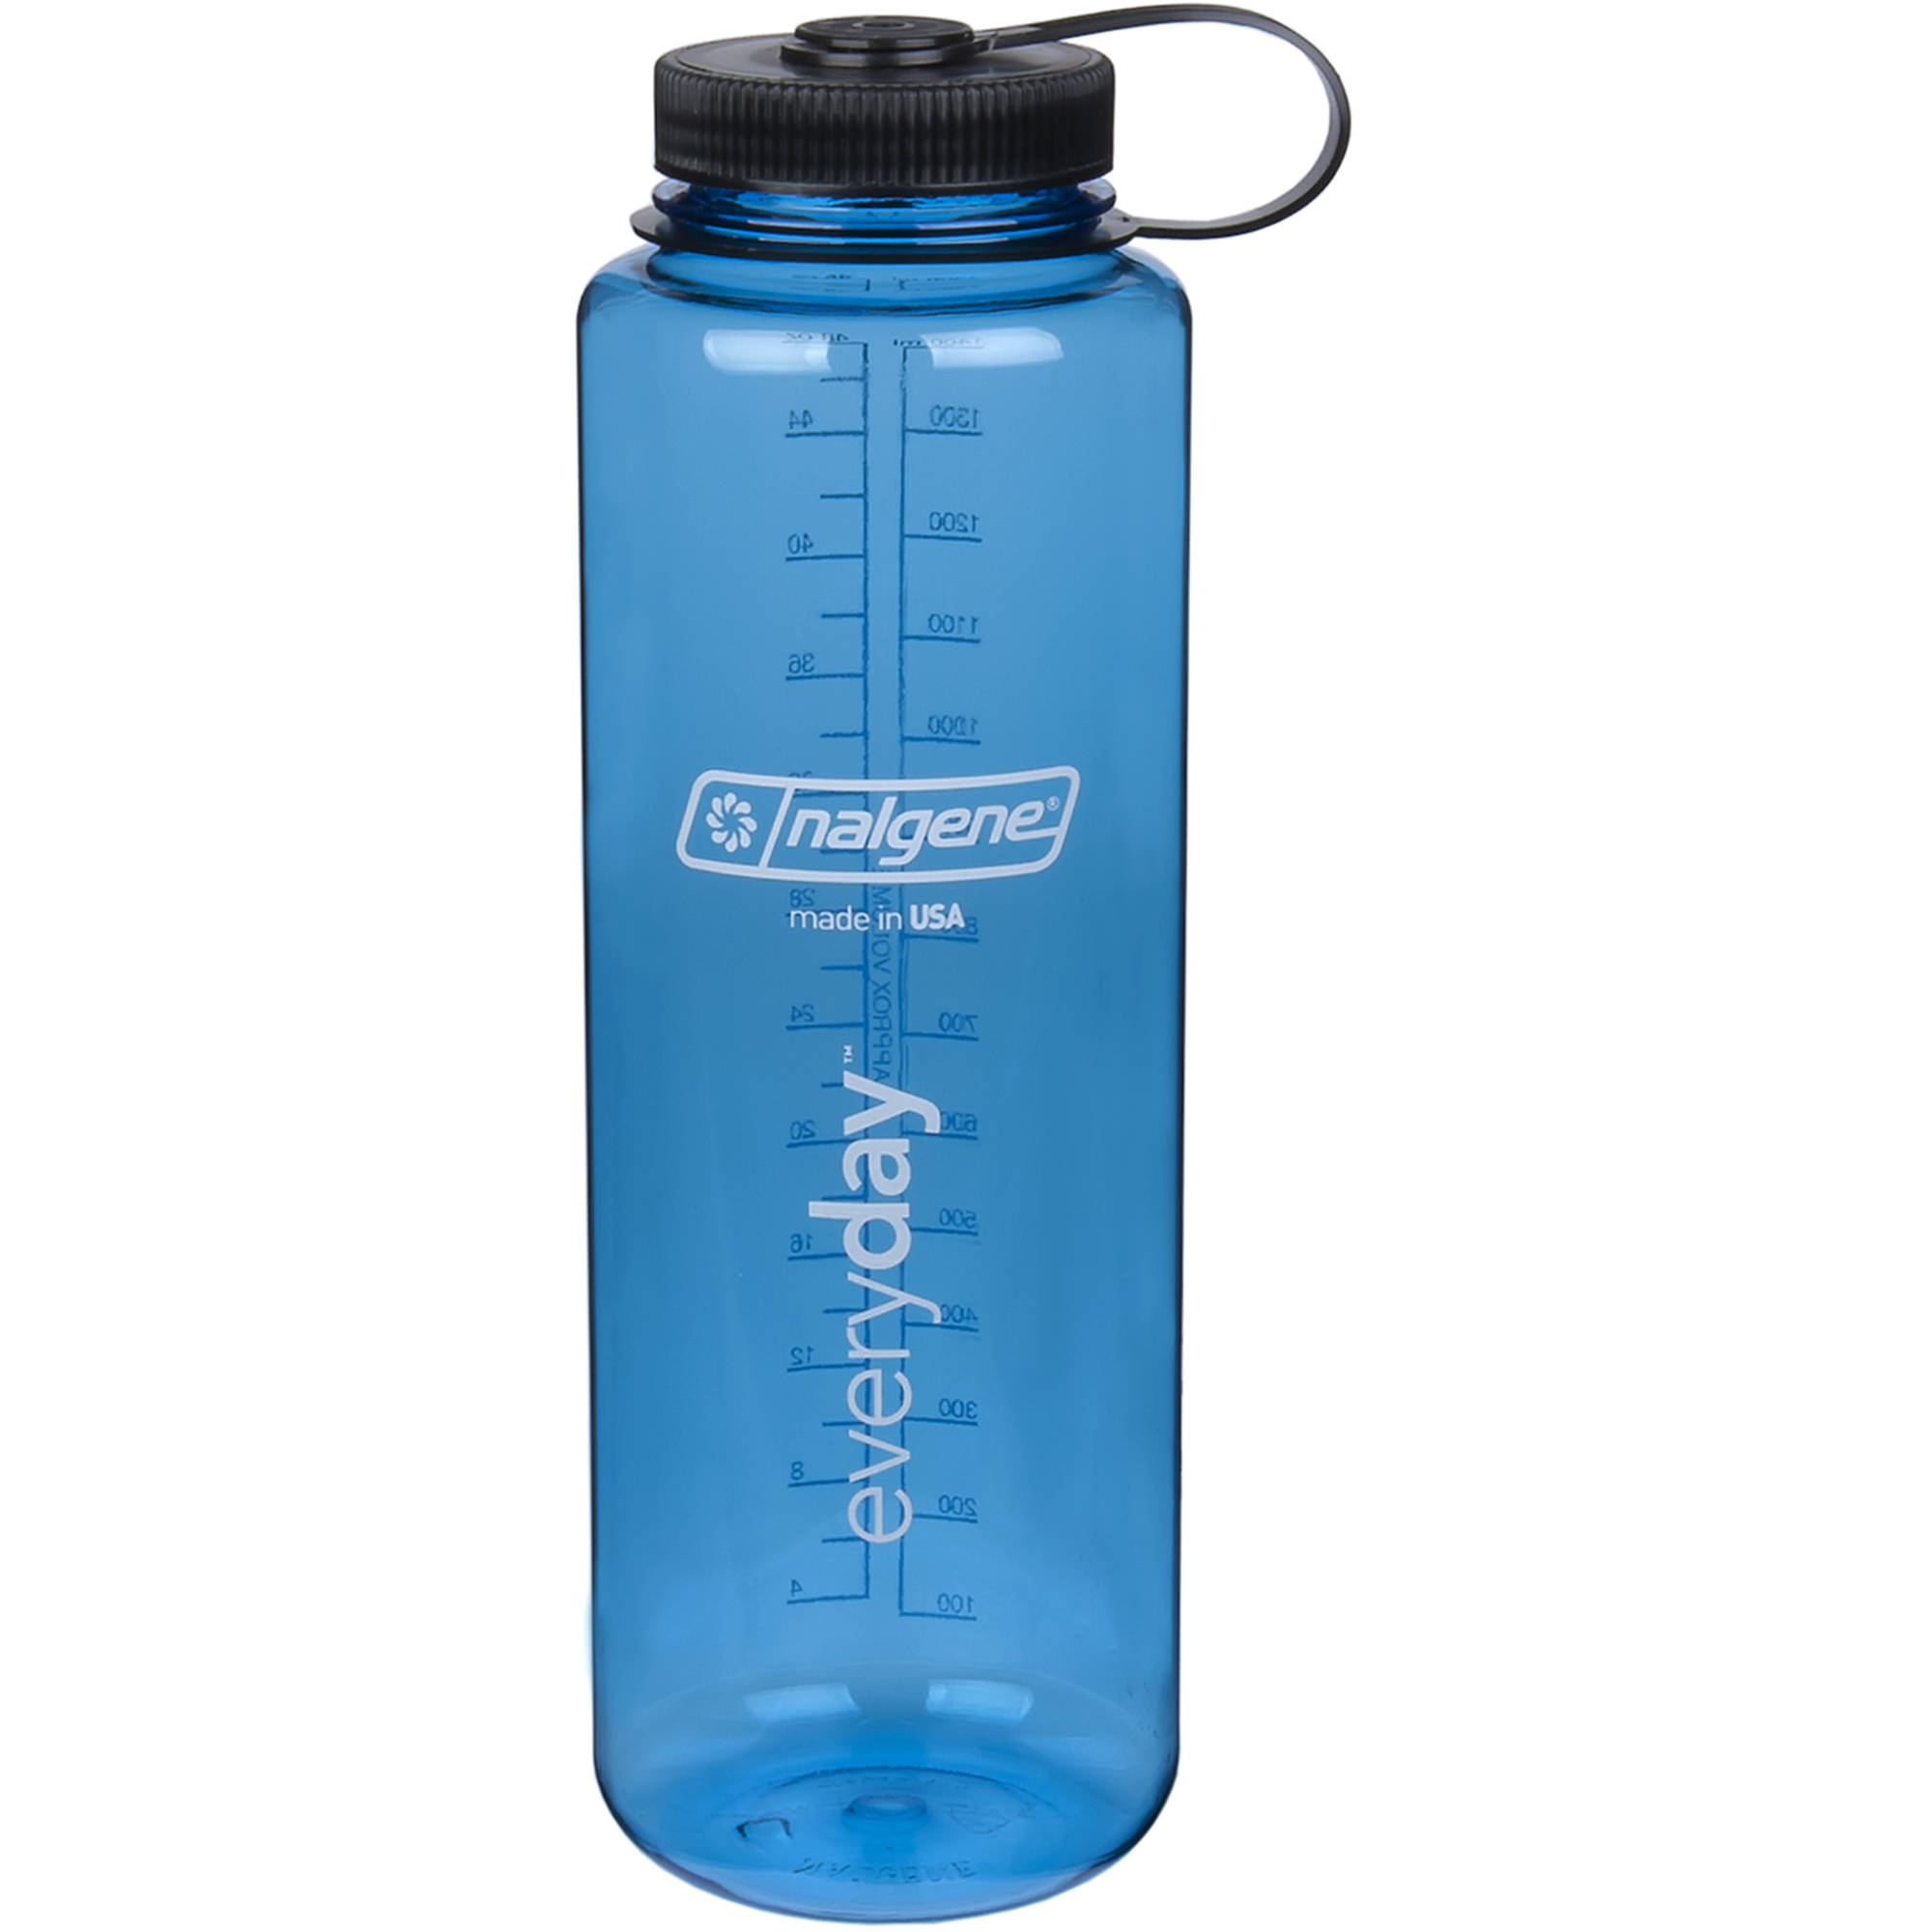 Nalgene Silo Wide Mouth Bottle 682009-0570 B&H Photo Video